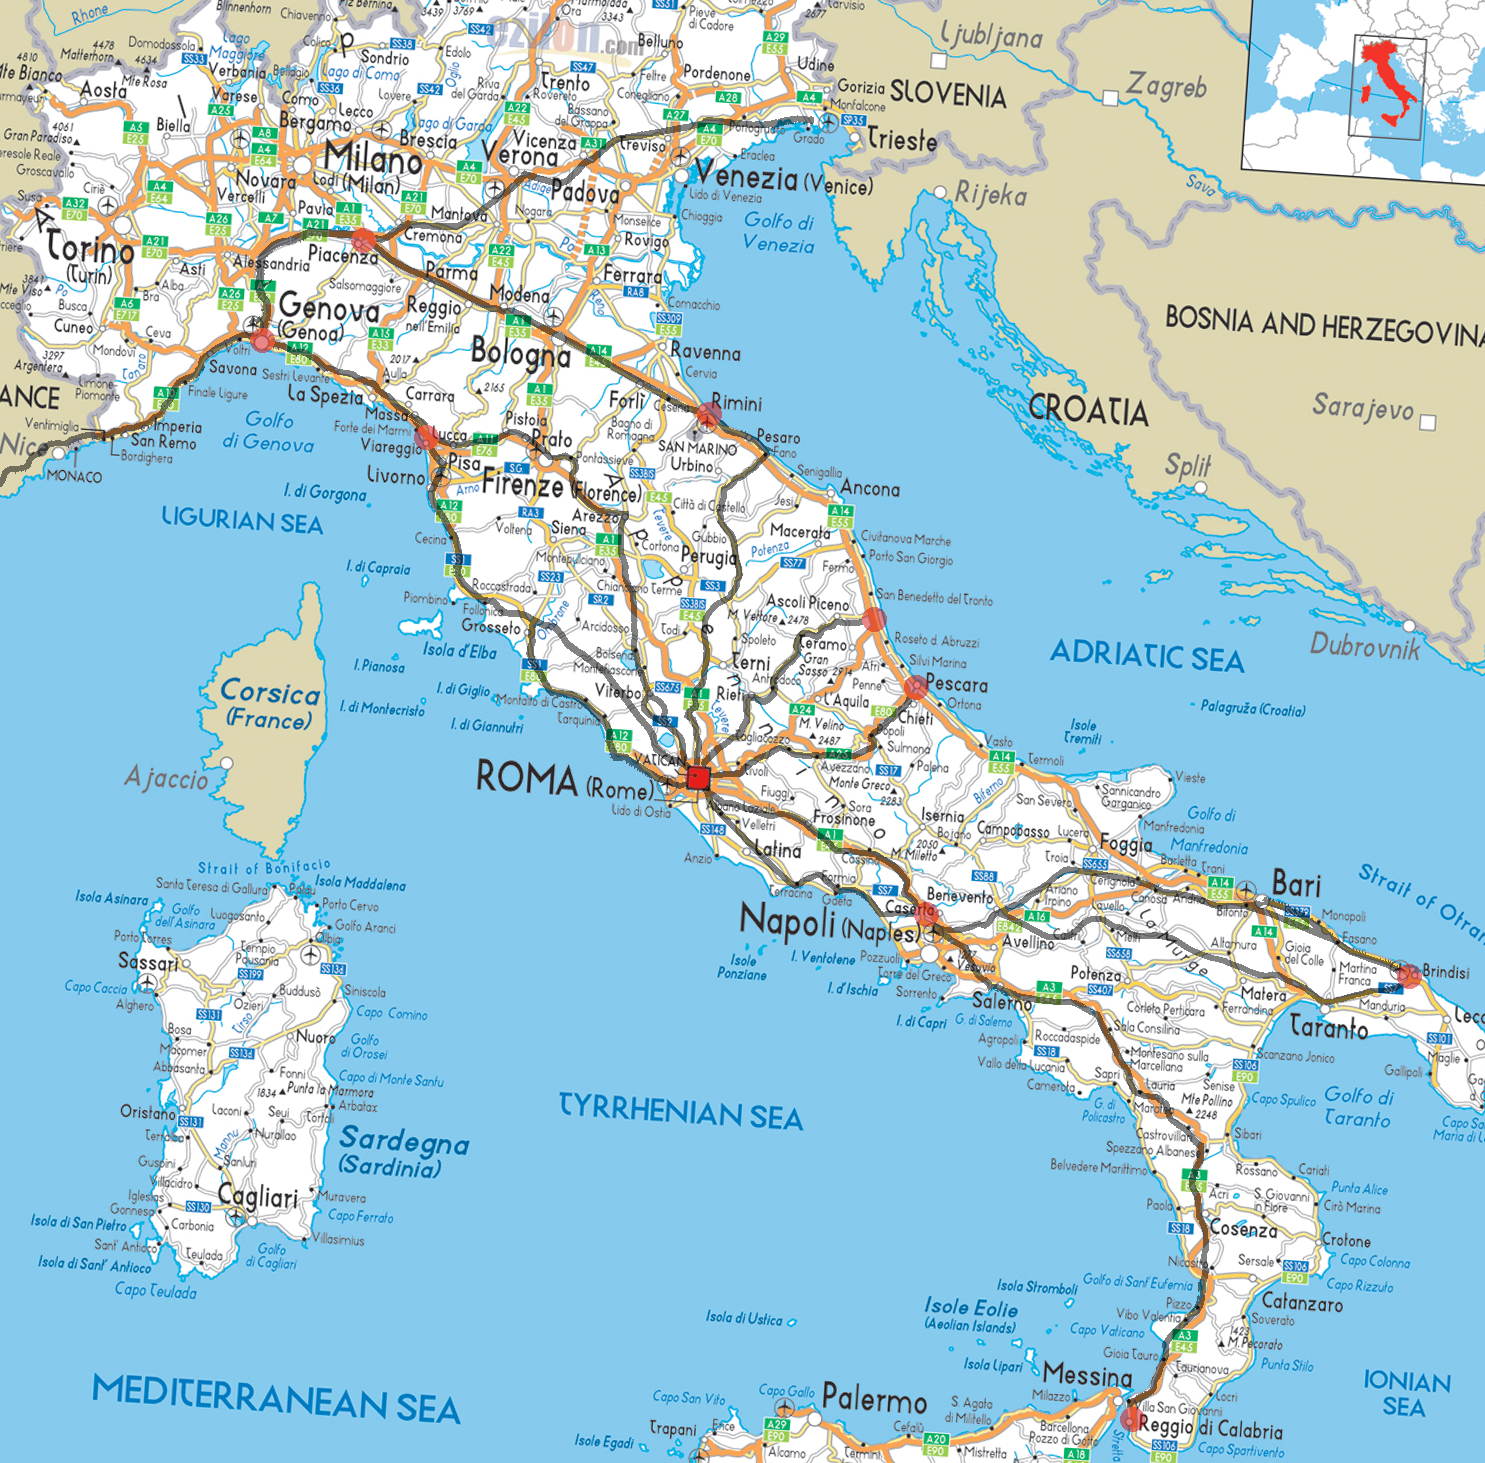 Ancient Roman roads overlaid on a modern road map of Italy - Old Roman Road PNG